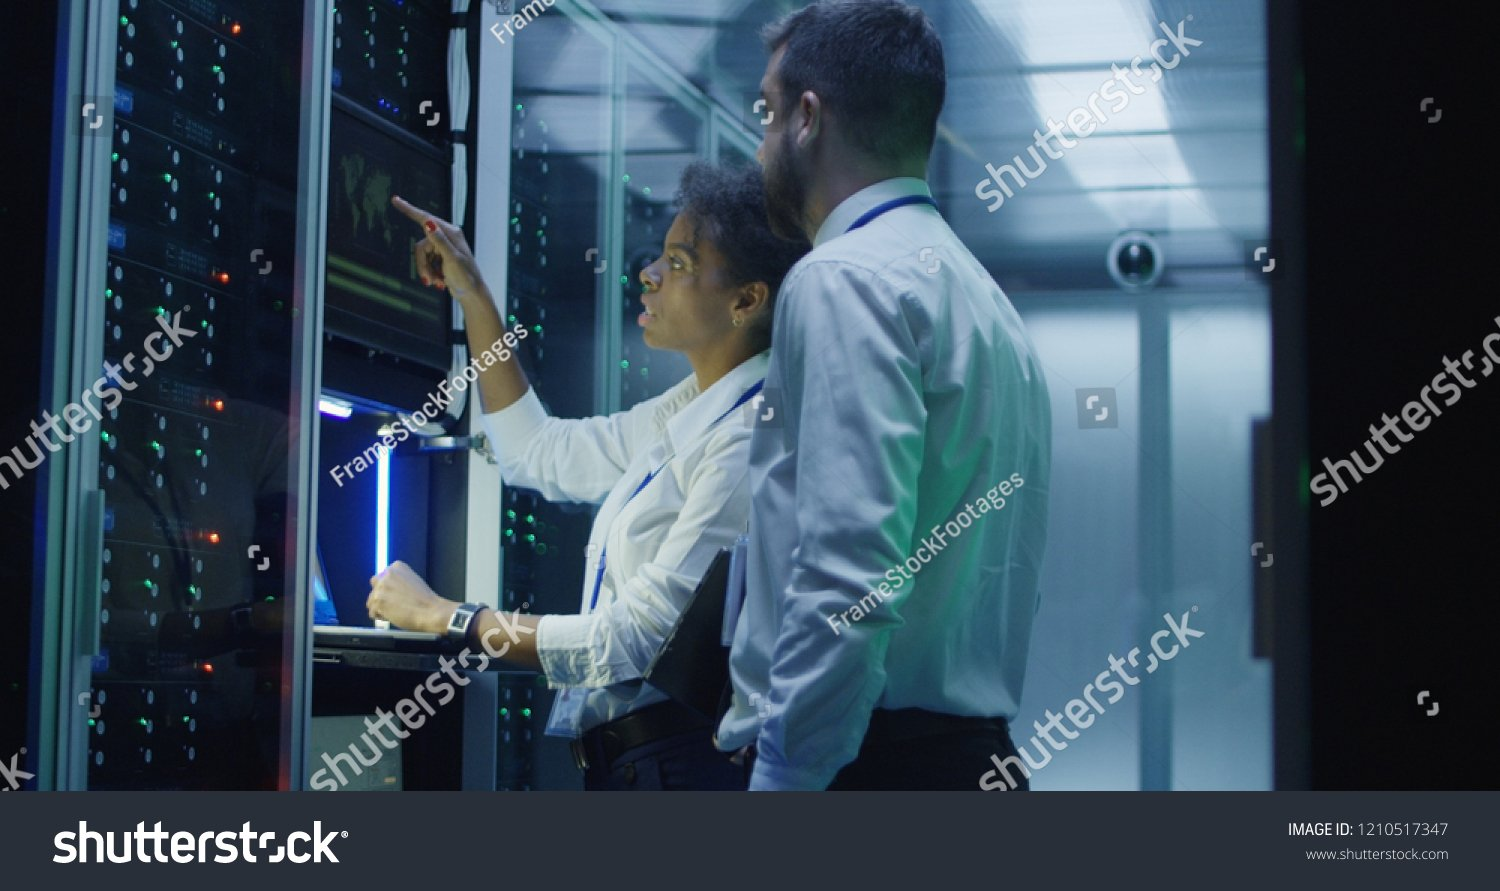 stock-photo-multiethnic-man-and-woman-in-white-shirts-using-laptop-and-tablet-while-working-in-server-room-of-1210517347